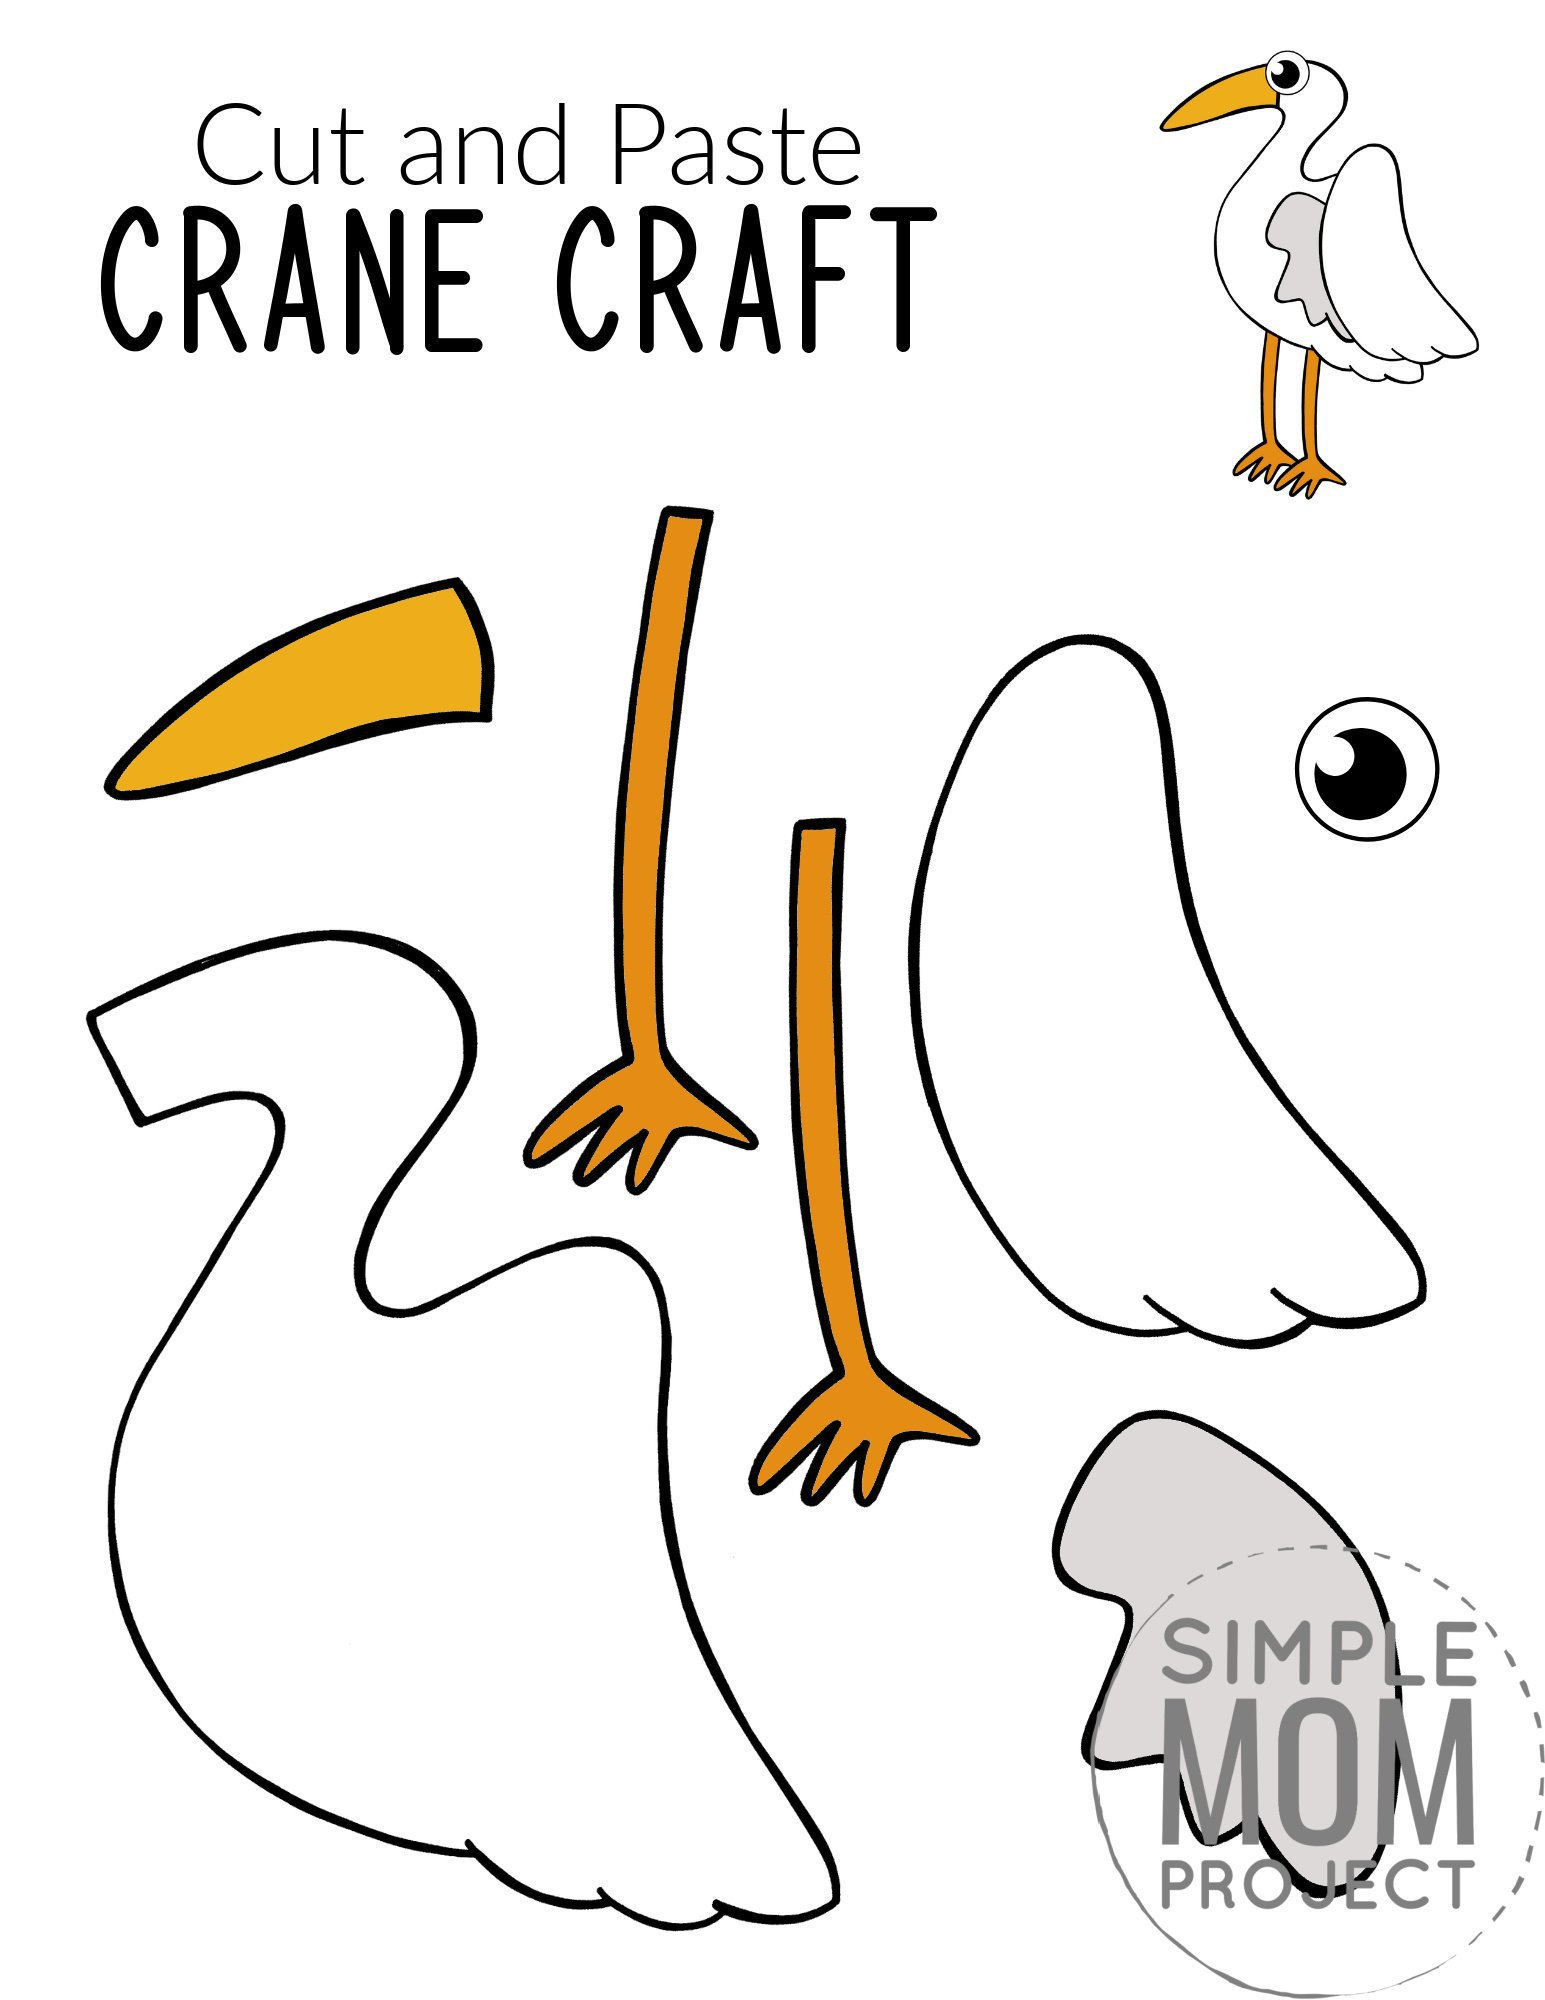 Free Printable Crane Craft for Kids, preschoolers toddlers and kindergartners